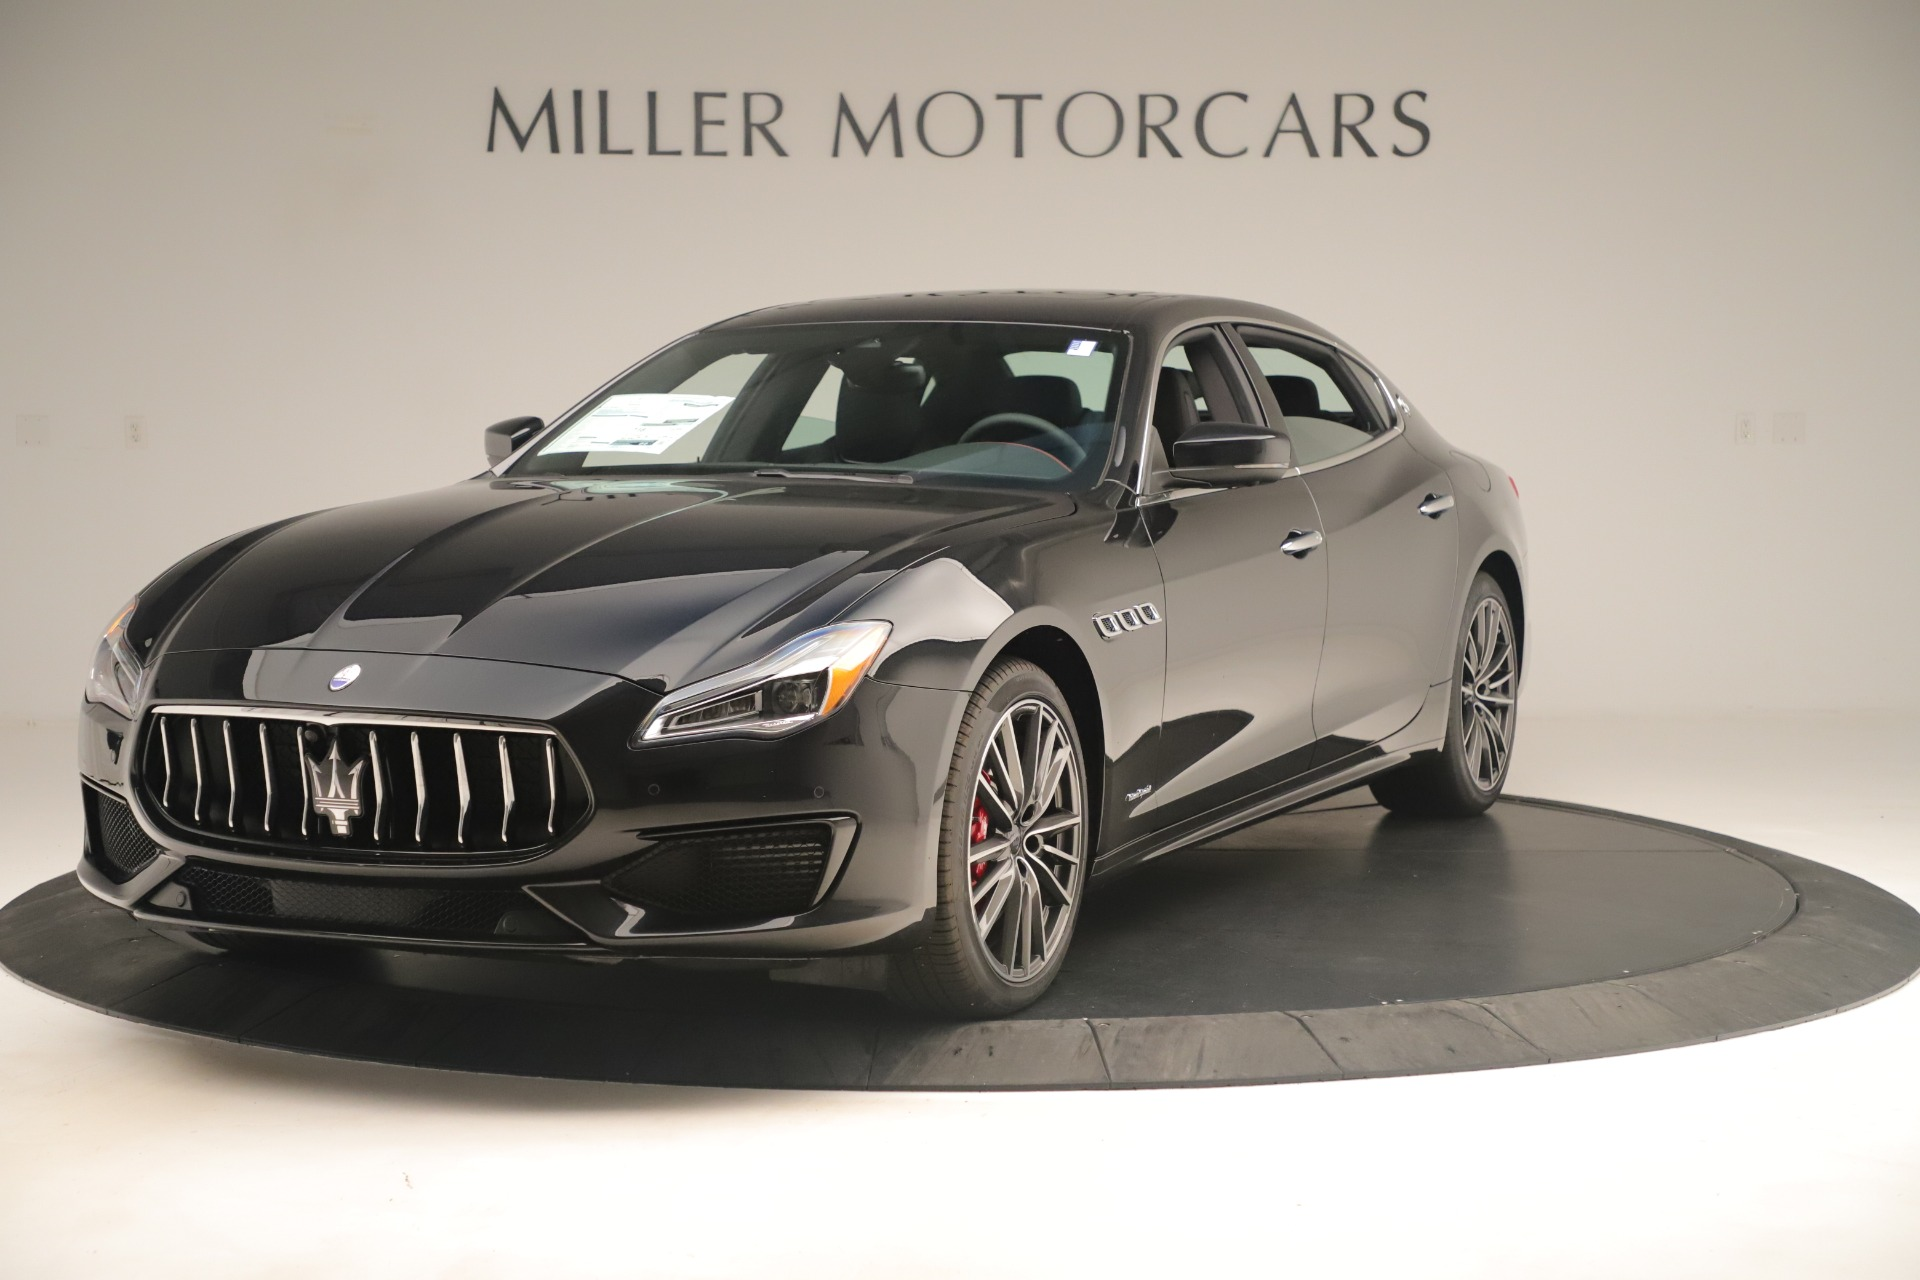 New 2019 Maserati Quattroporte S Q4 GranSport for sale Sold at Bentley Greenwich in Greenwich CT 06830 1